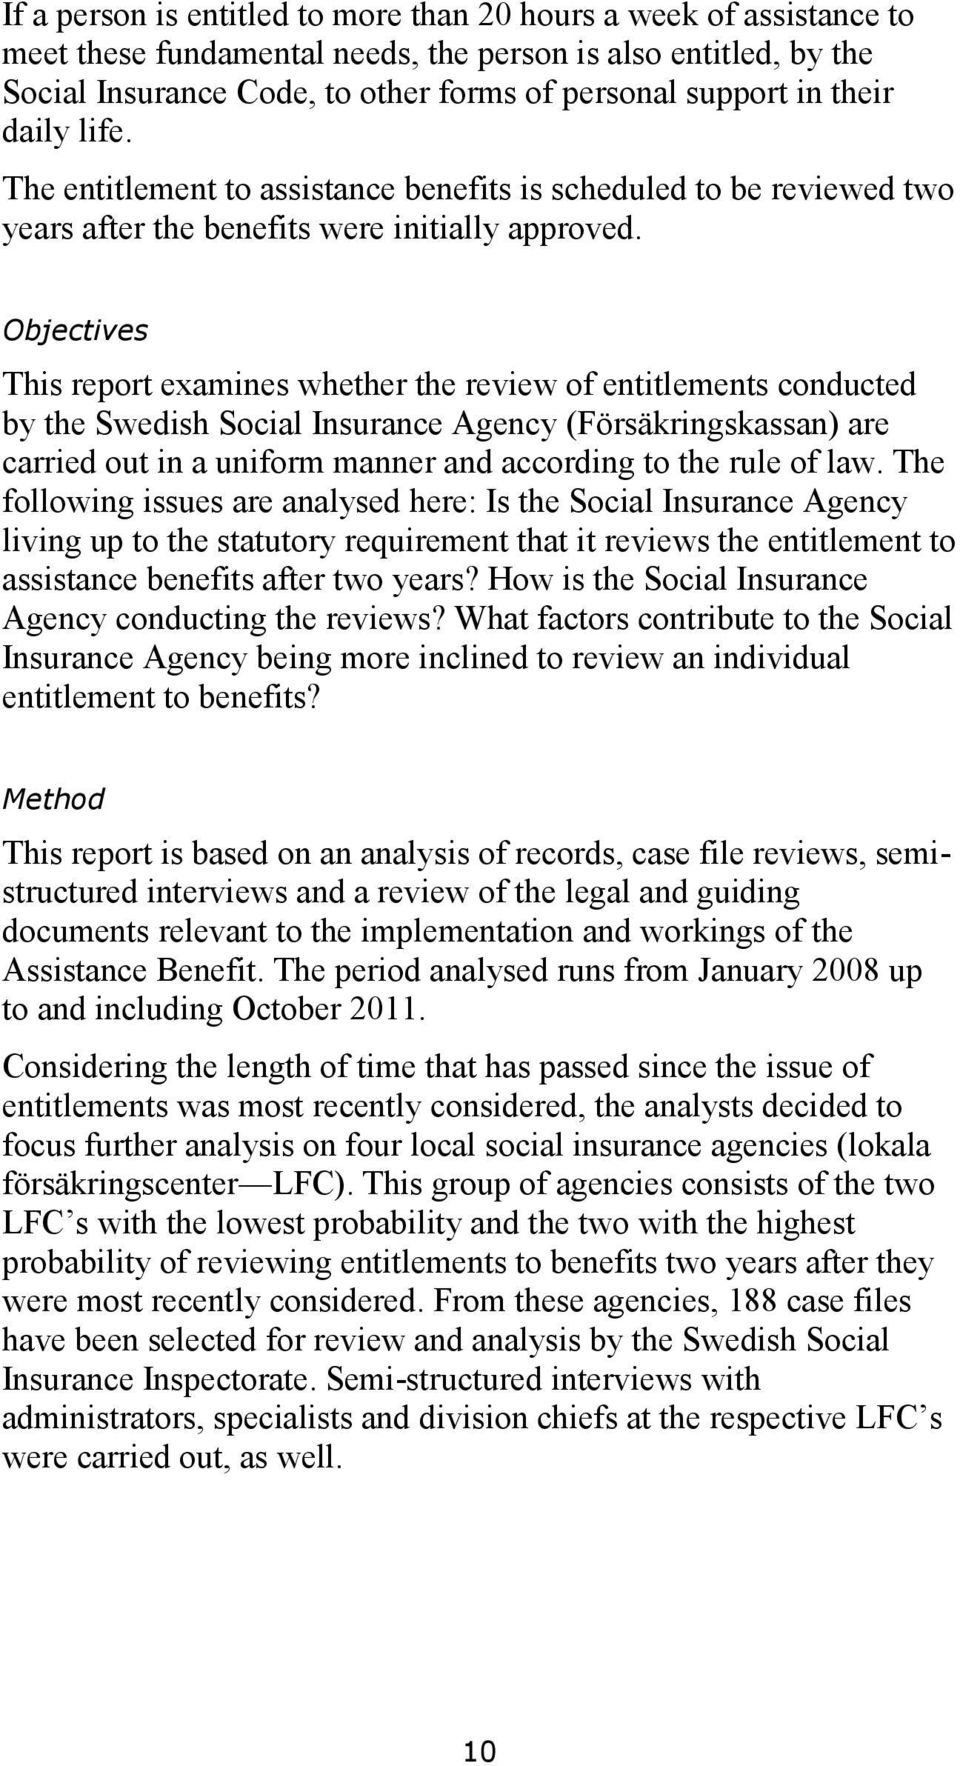 Objectives This report examines whether the review of entitlements conducted by the Swedish Social Insurance Agency (Försäkringskassan) are carried out in a uniform manner and according to the rule